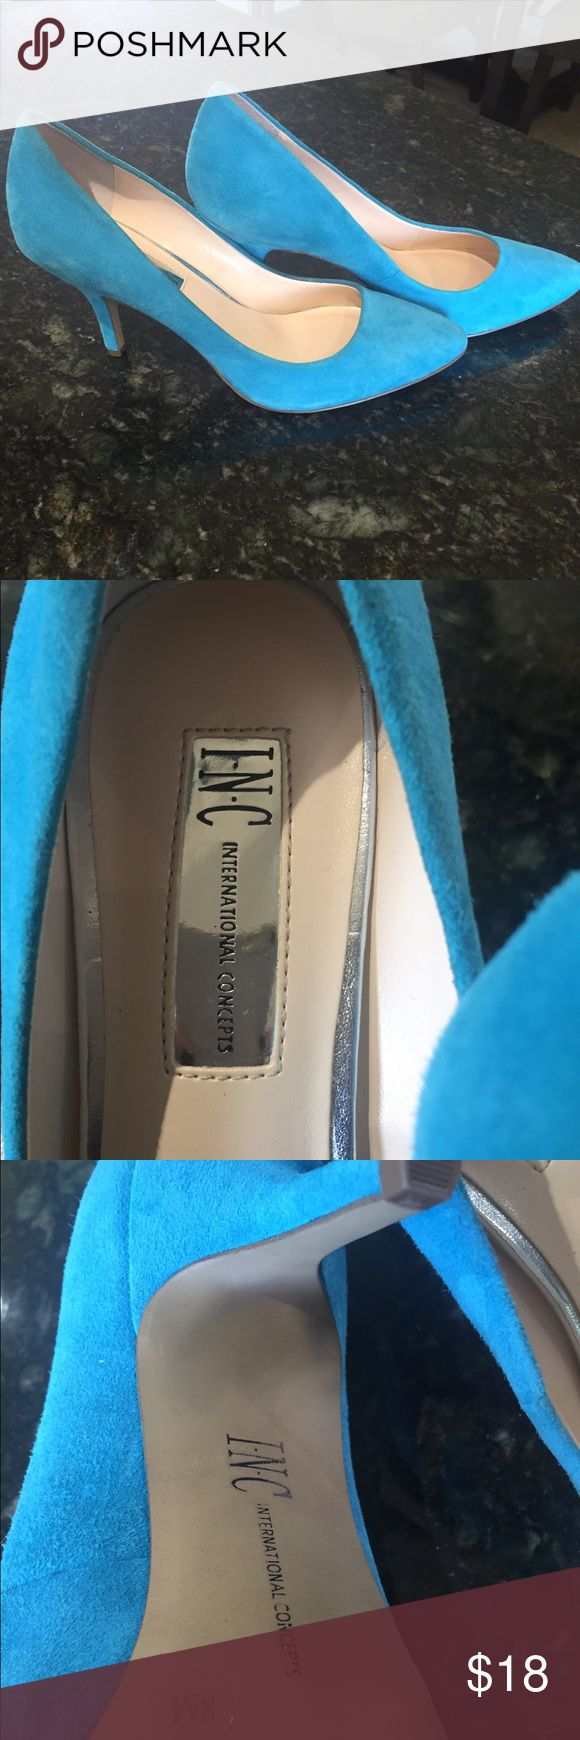 Blue Suede INC Pumps Size 8 never worn ! Blue Suede INC Pumps never worn bought at Macy's still has the size 8 sticker on the bottom. INC International Concepts Shoes Heels